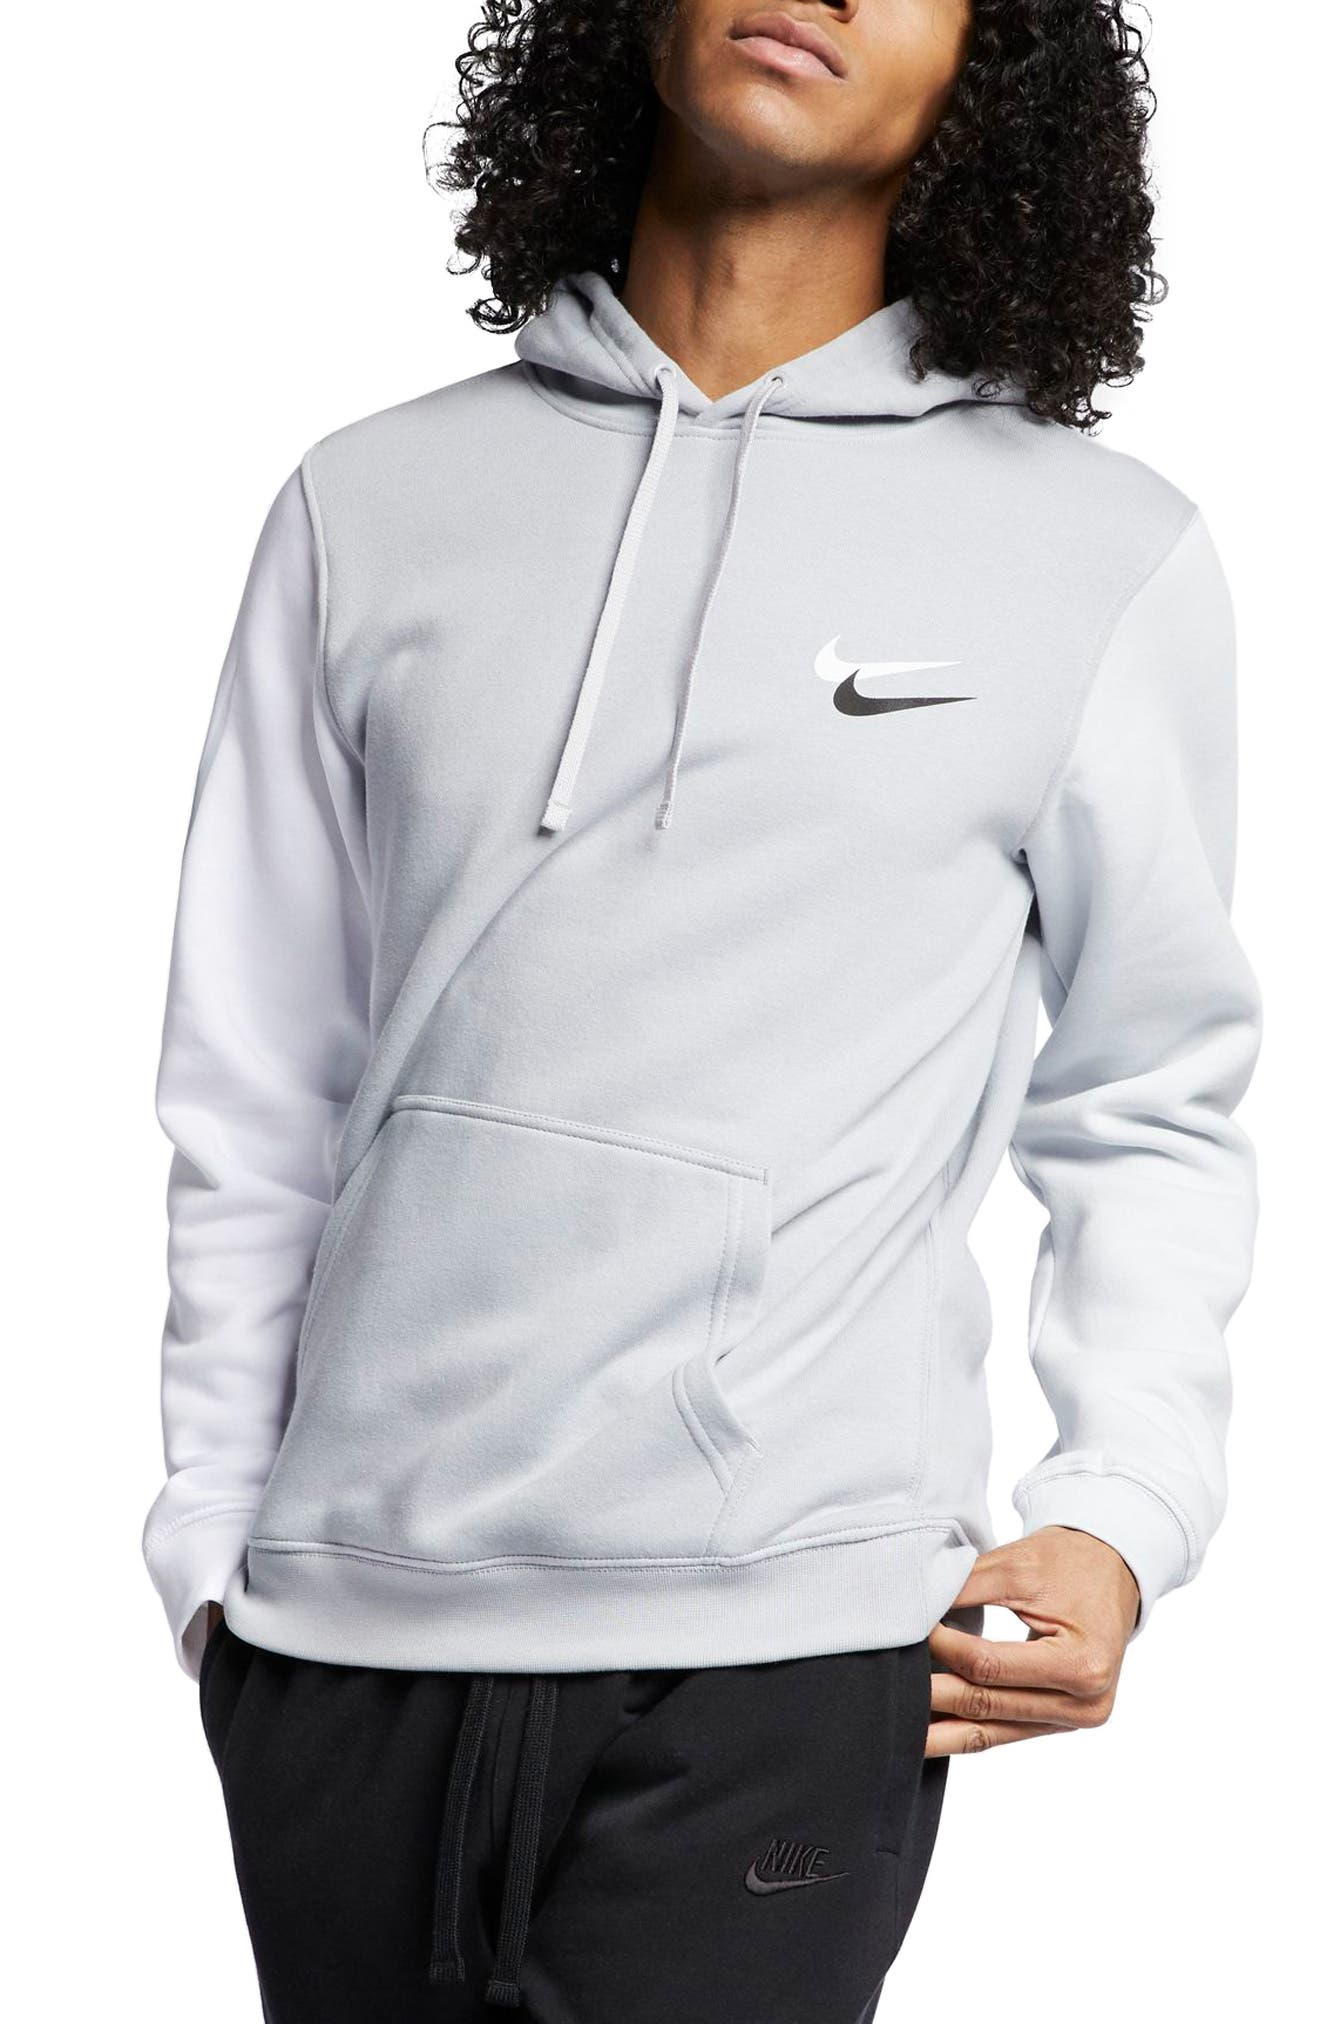 NIKE, Sportswear City Brights Club Men's Pullover Hoodie, Main thumbnail 1, color, WOLF GREY/ WHITE/ PLATINUM